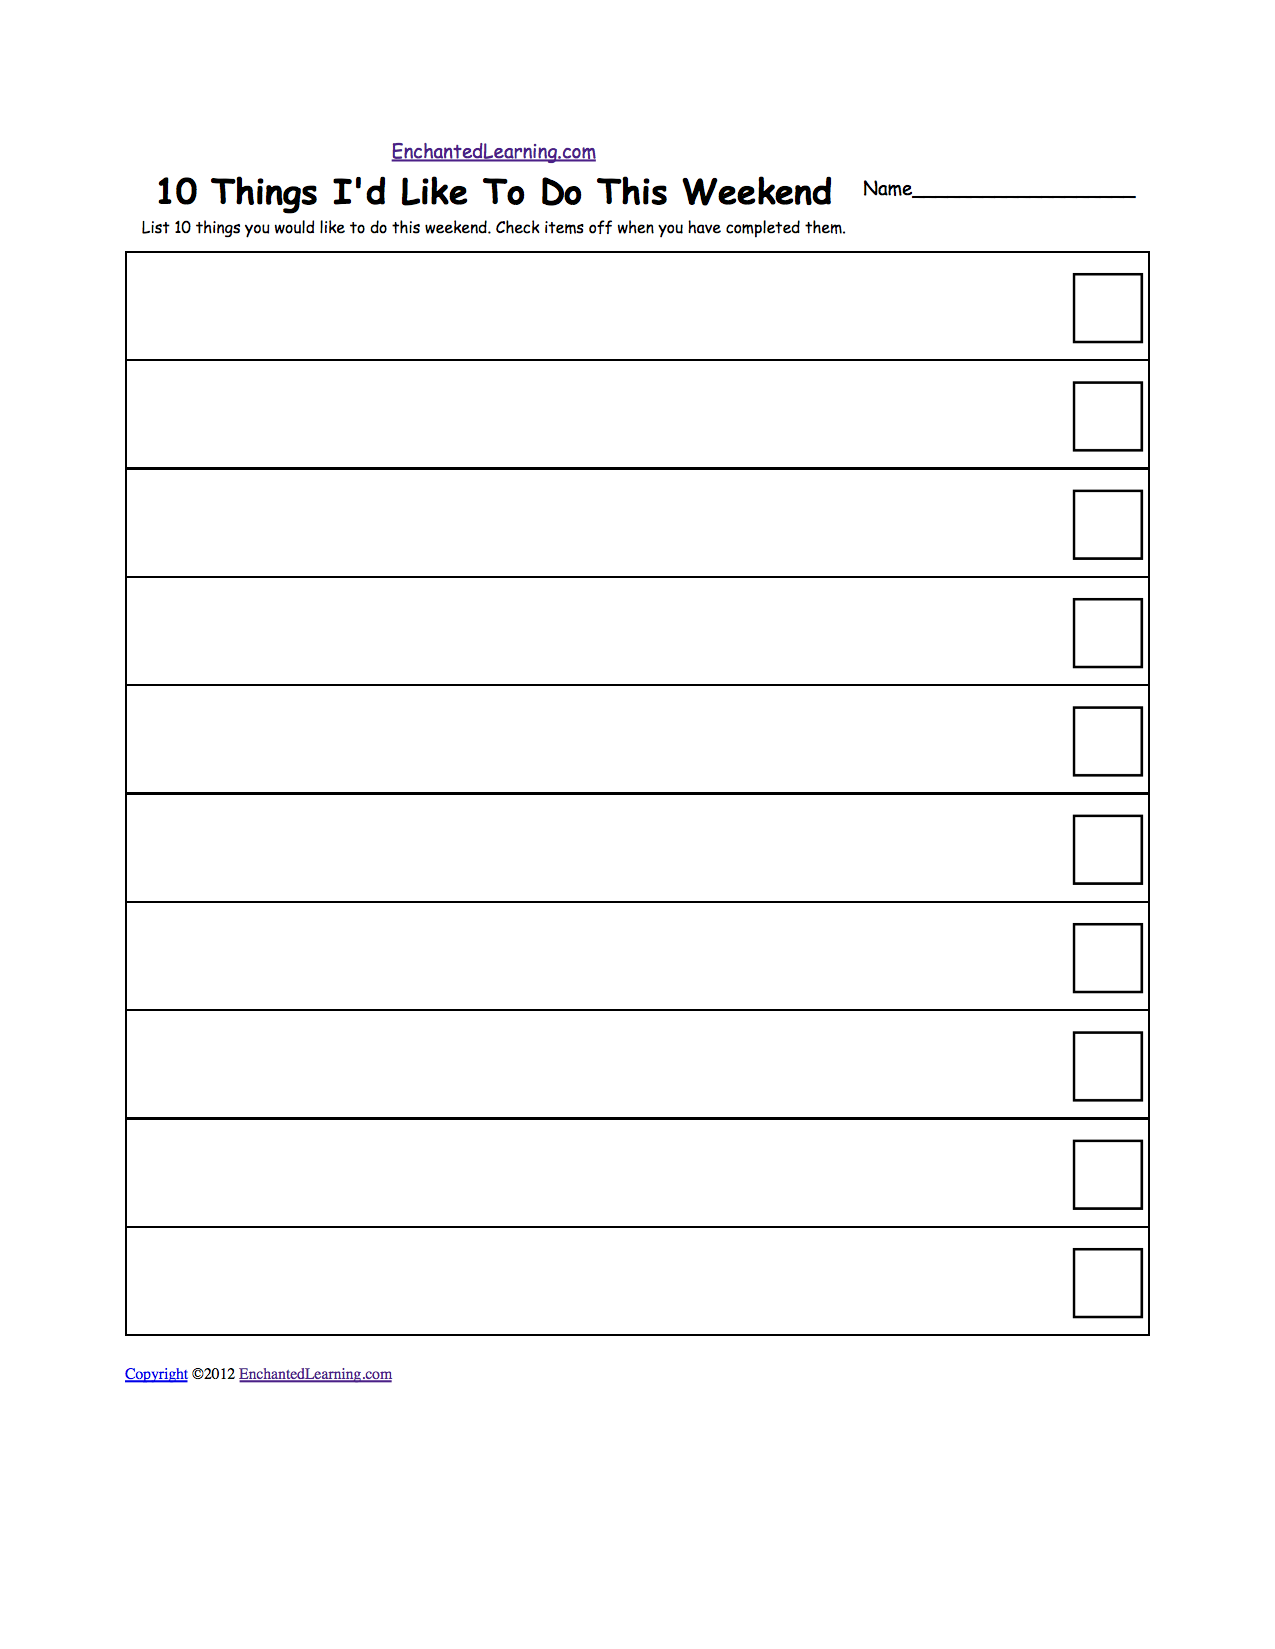 Checklists - Printable Worksheets. EnchantedLearning.com